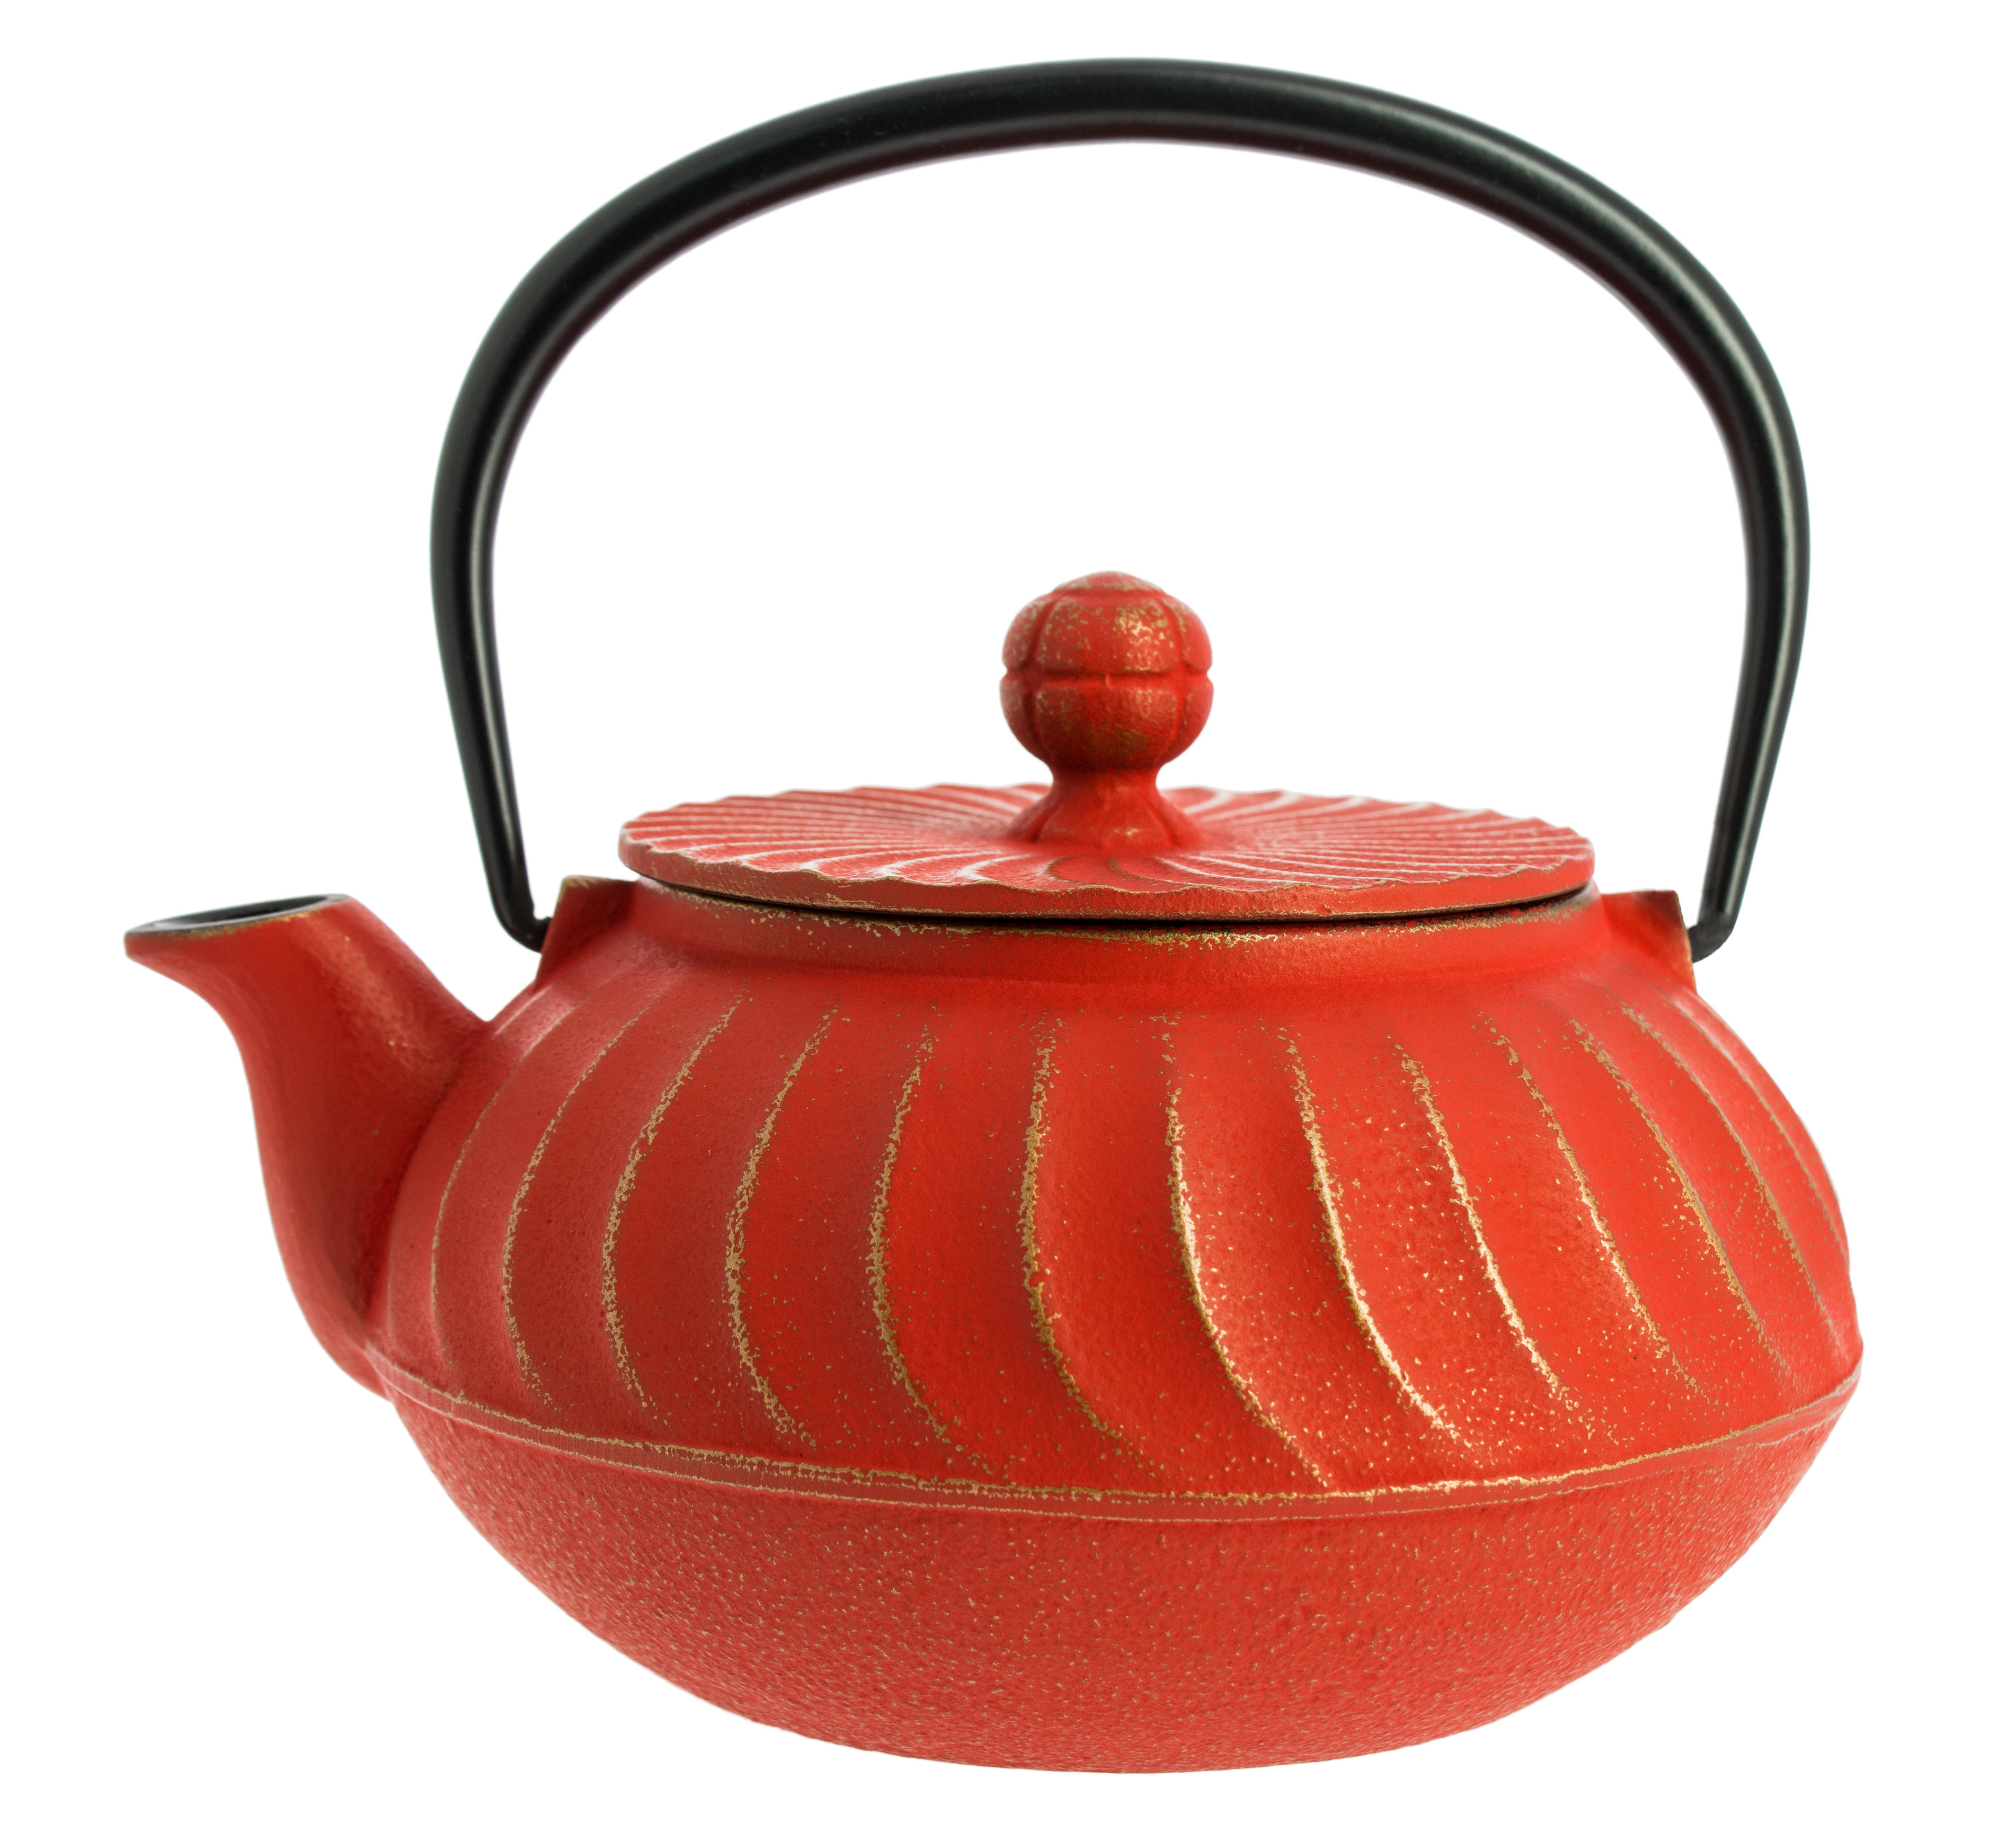 Nami Iwachu Teapot - Golden Red 650 ml